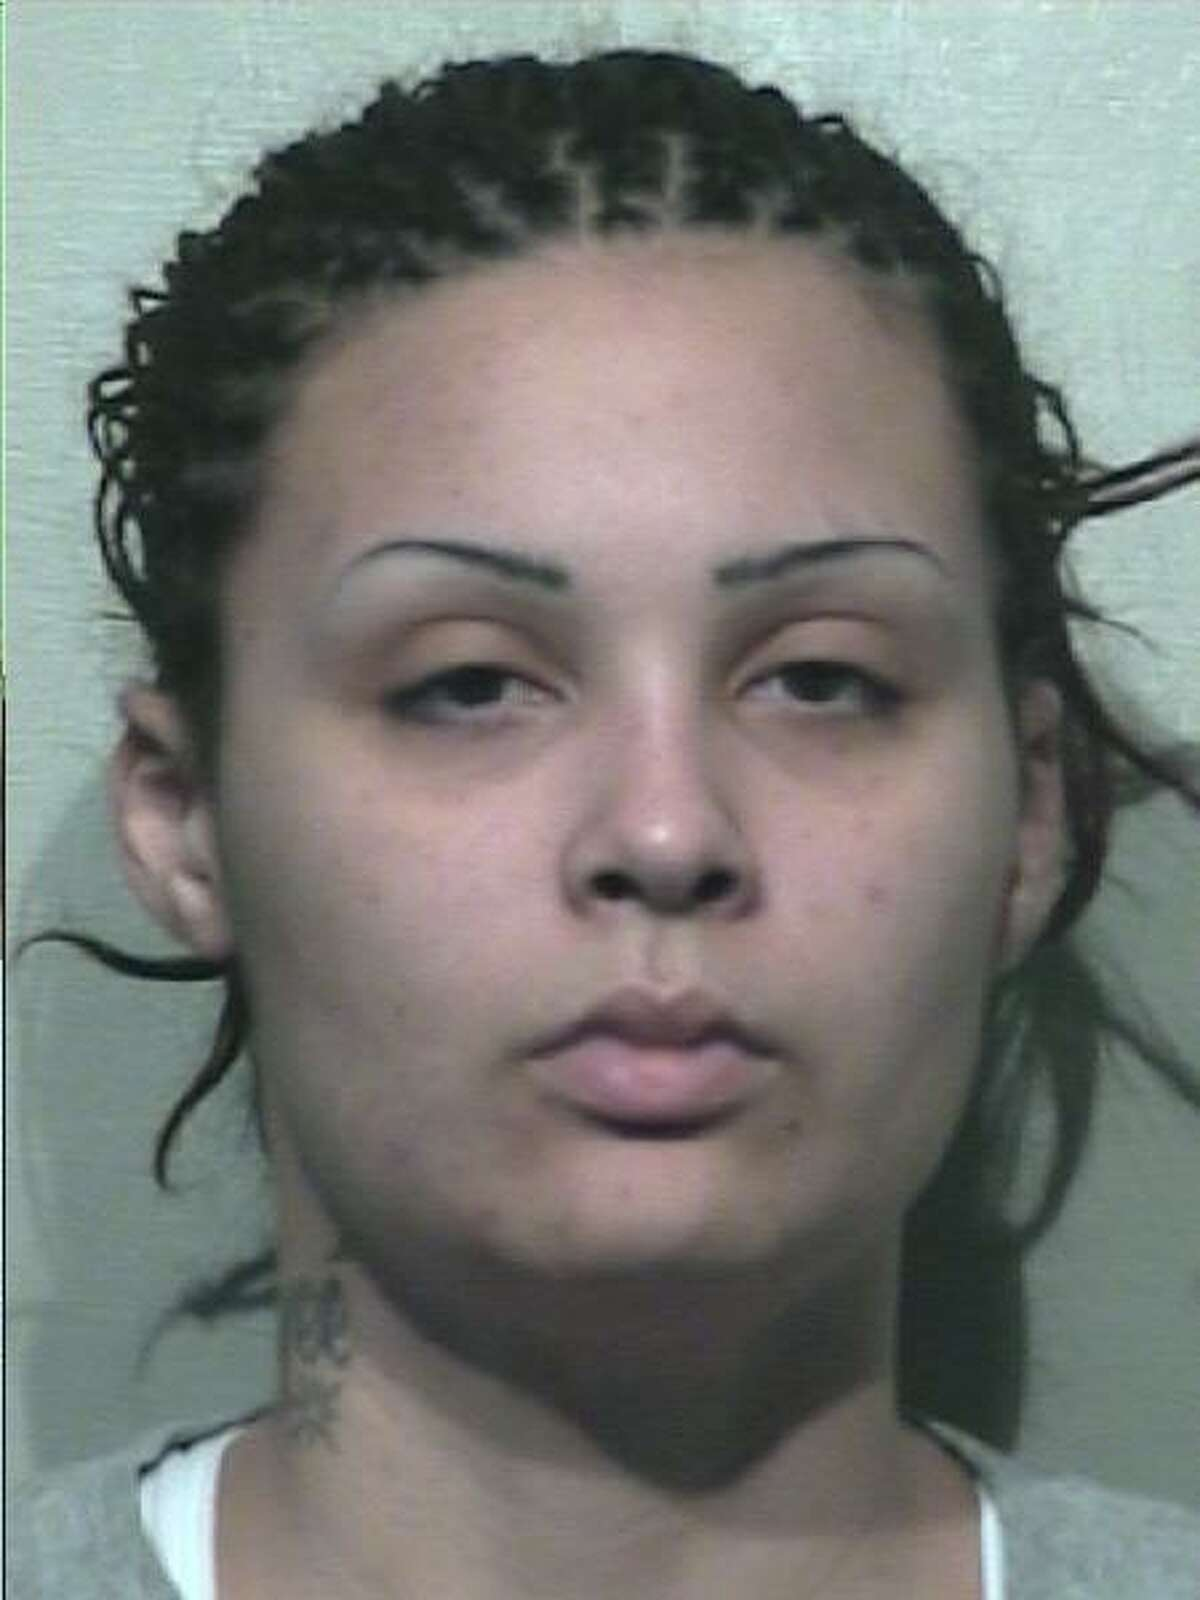 Amanda Rensvold, pictured in a 2012 photo from the Department of Corrections.